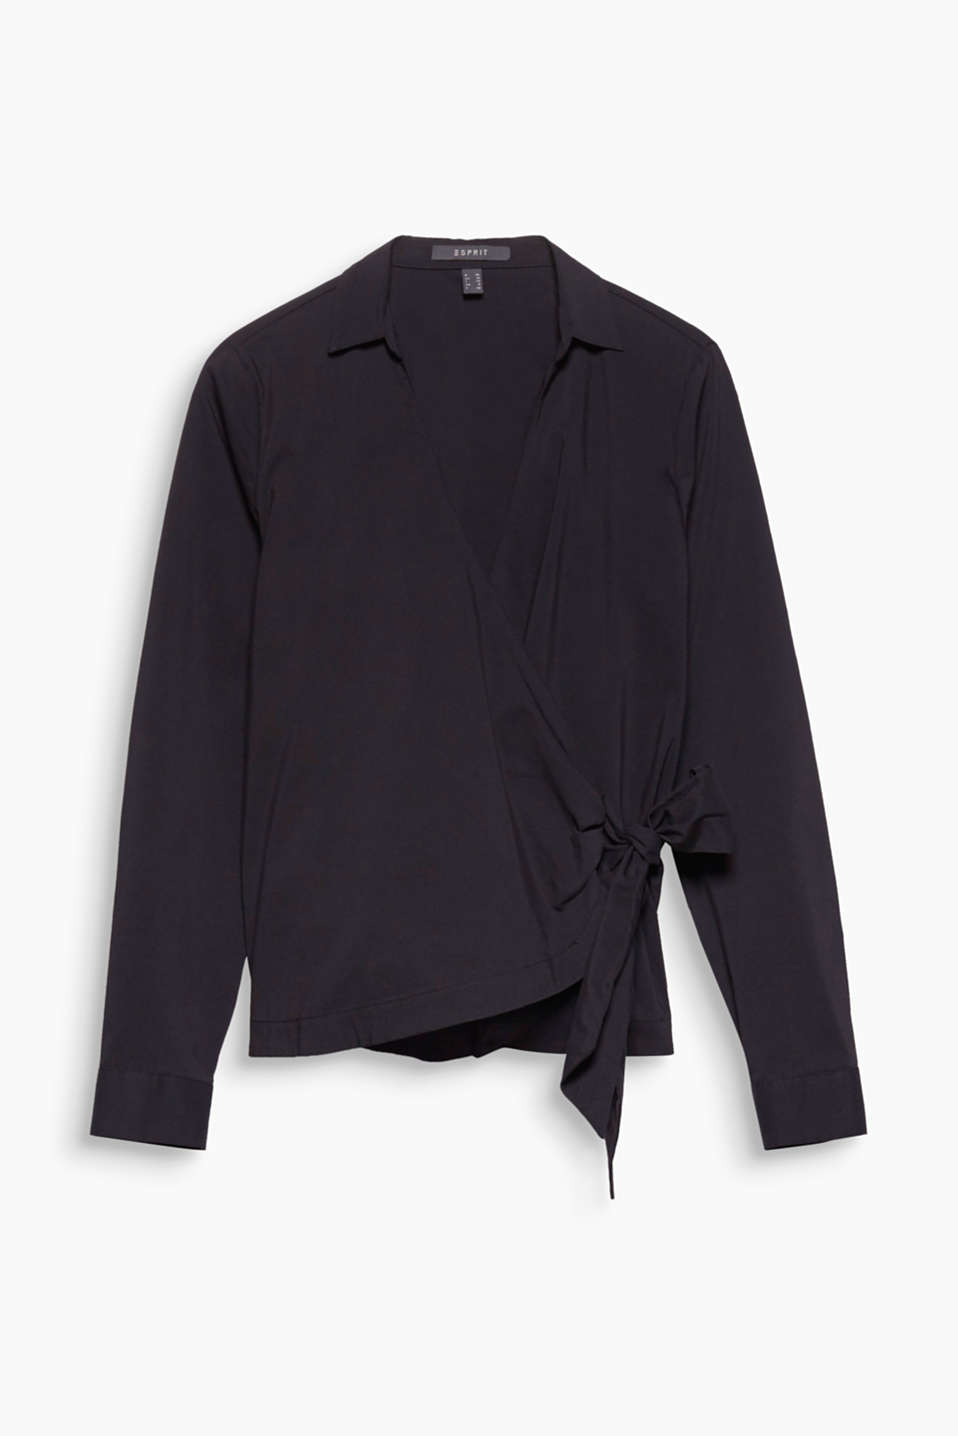 This cotton blend blouse with a collar and sophisticated wrap-over look exudes timelessly simple elegance.